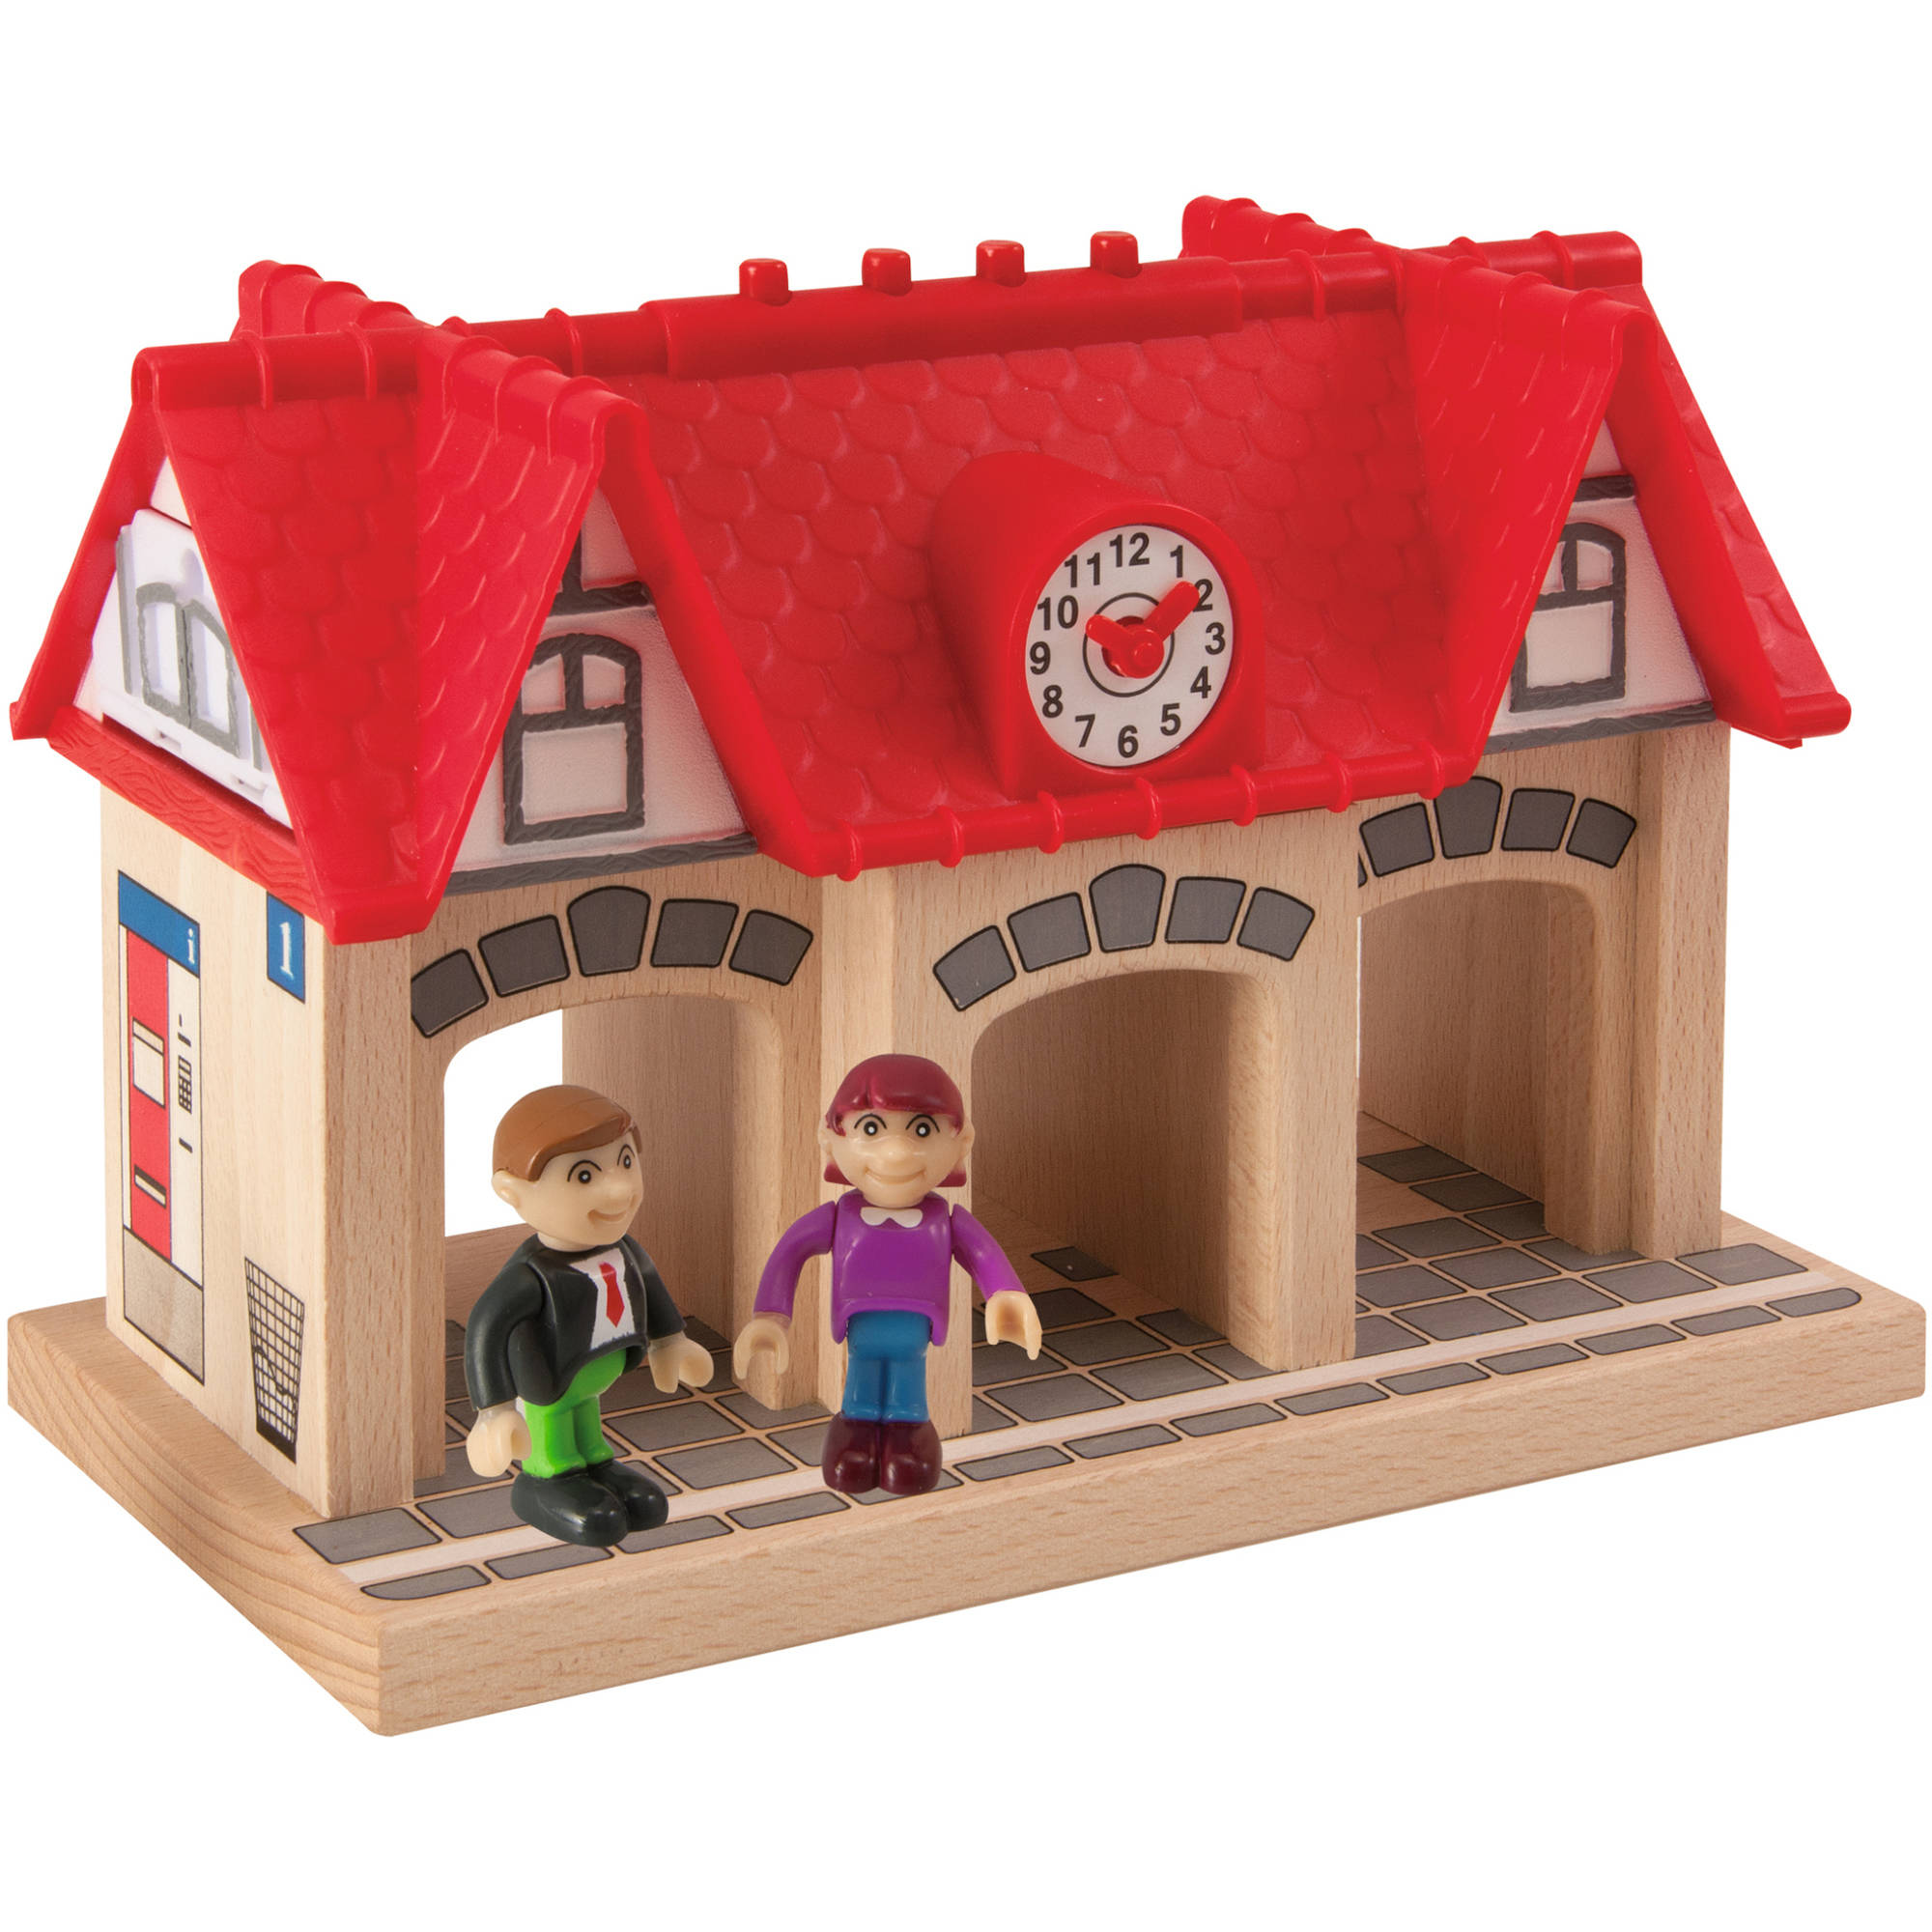 Eichhorn 4-Piece Wooden Soundstation for Trains Sets by Eichhorn